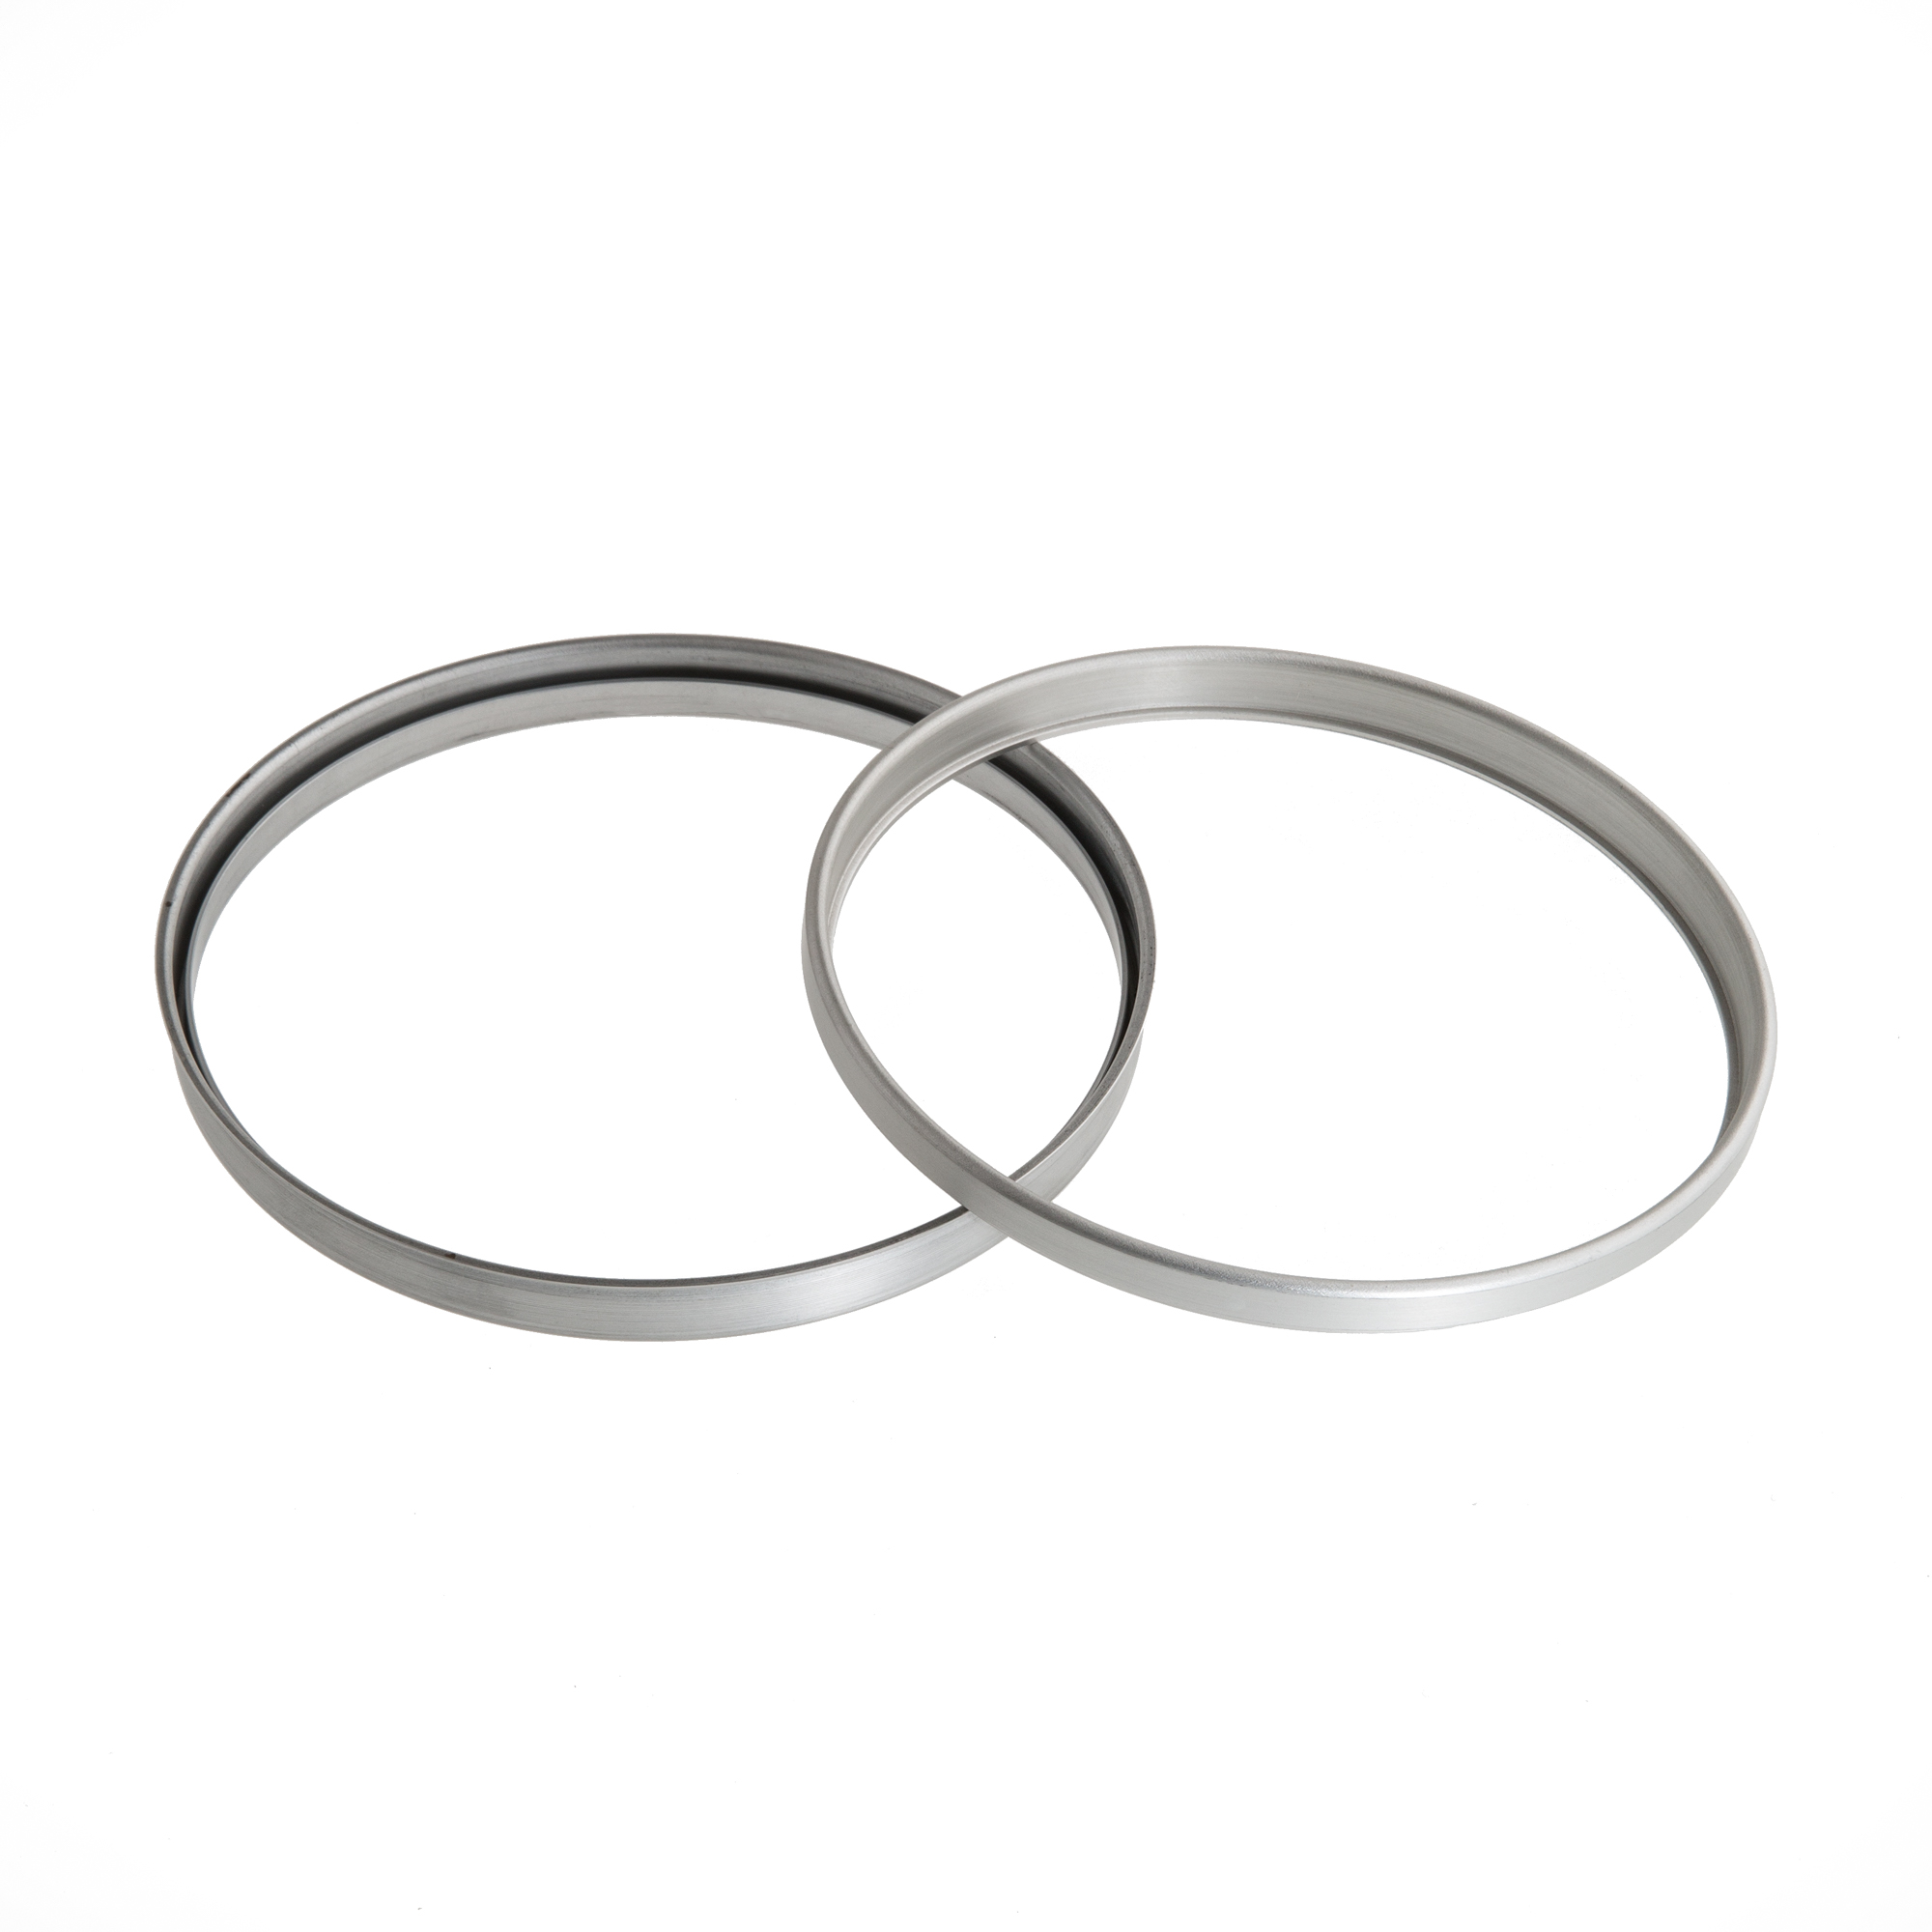 metal spinning sample two rings with rim aluminum